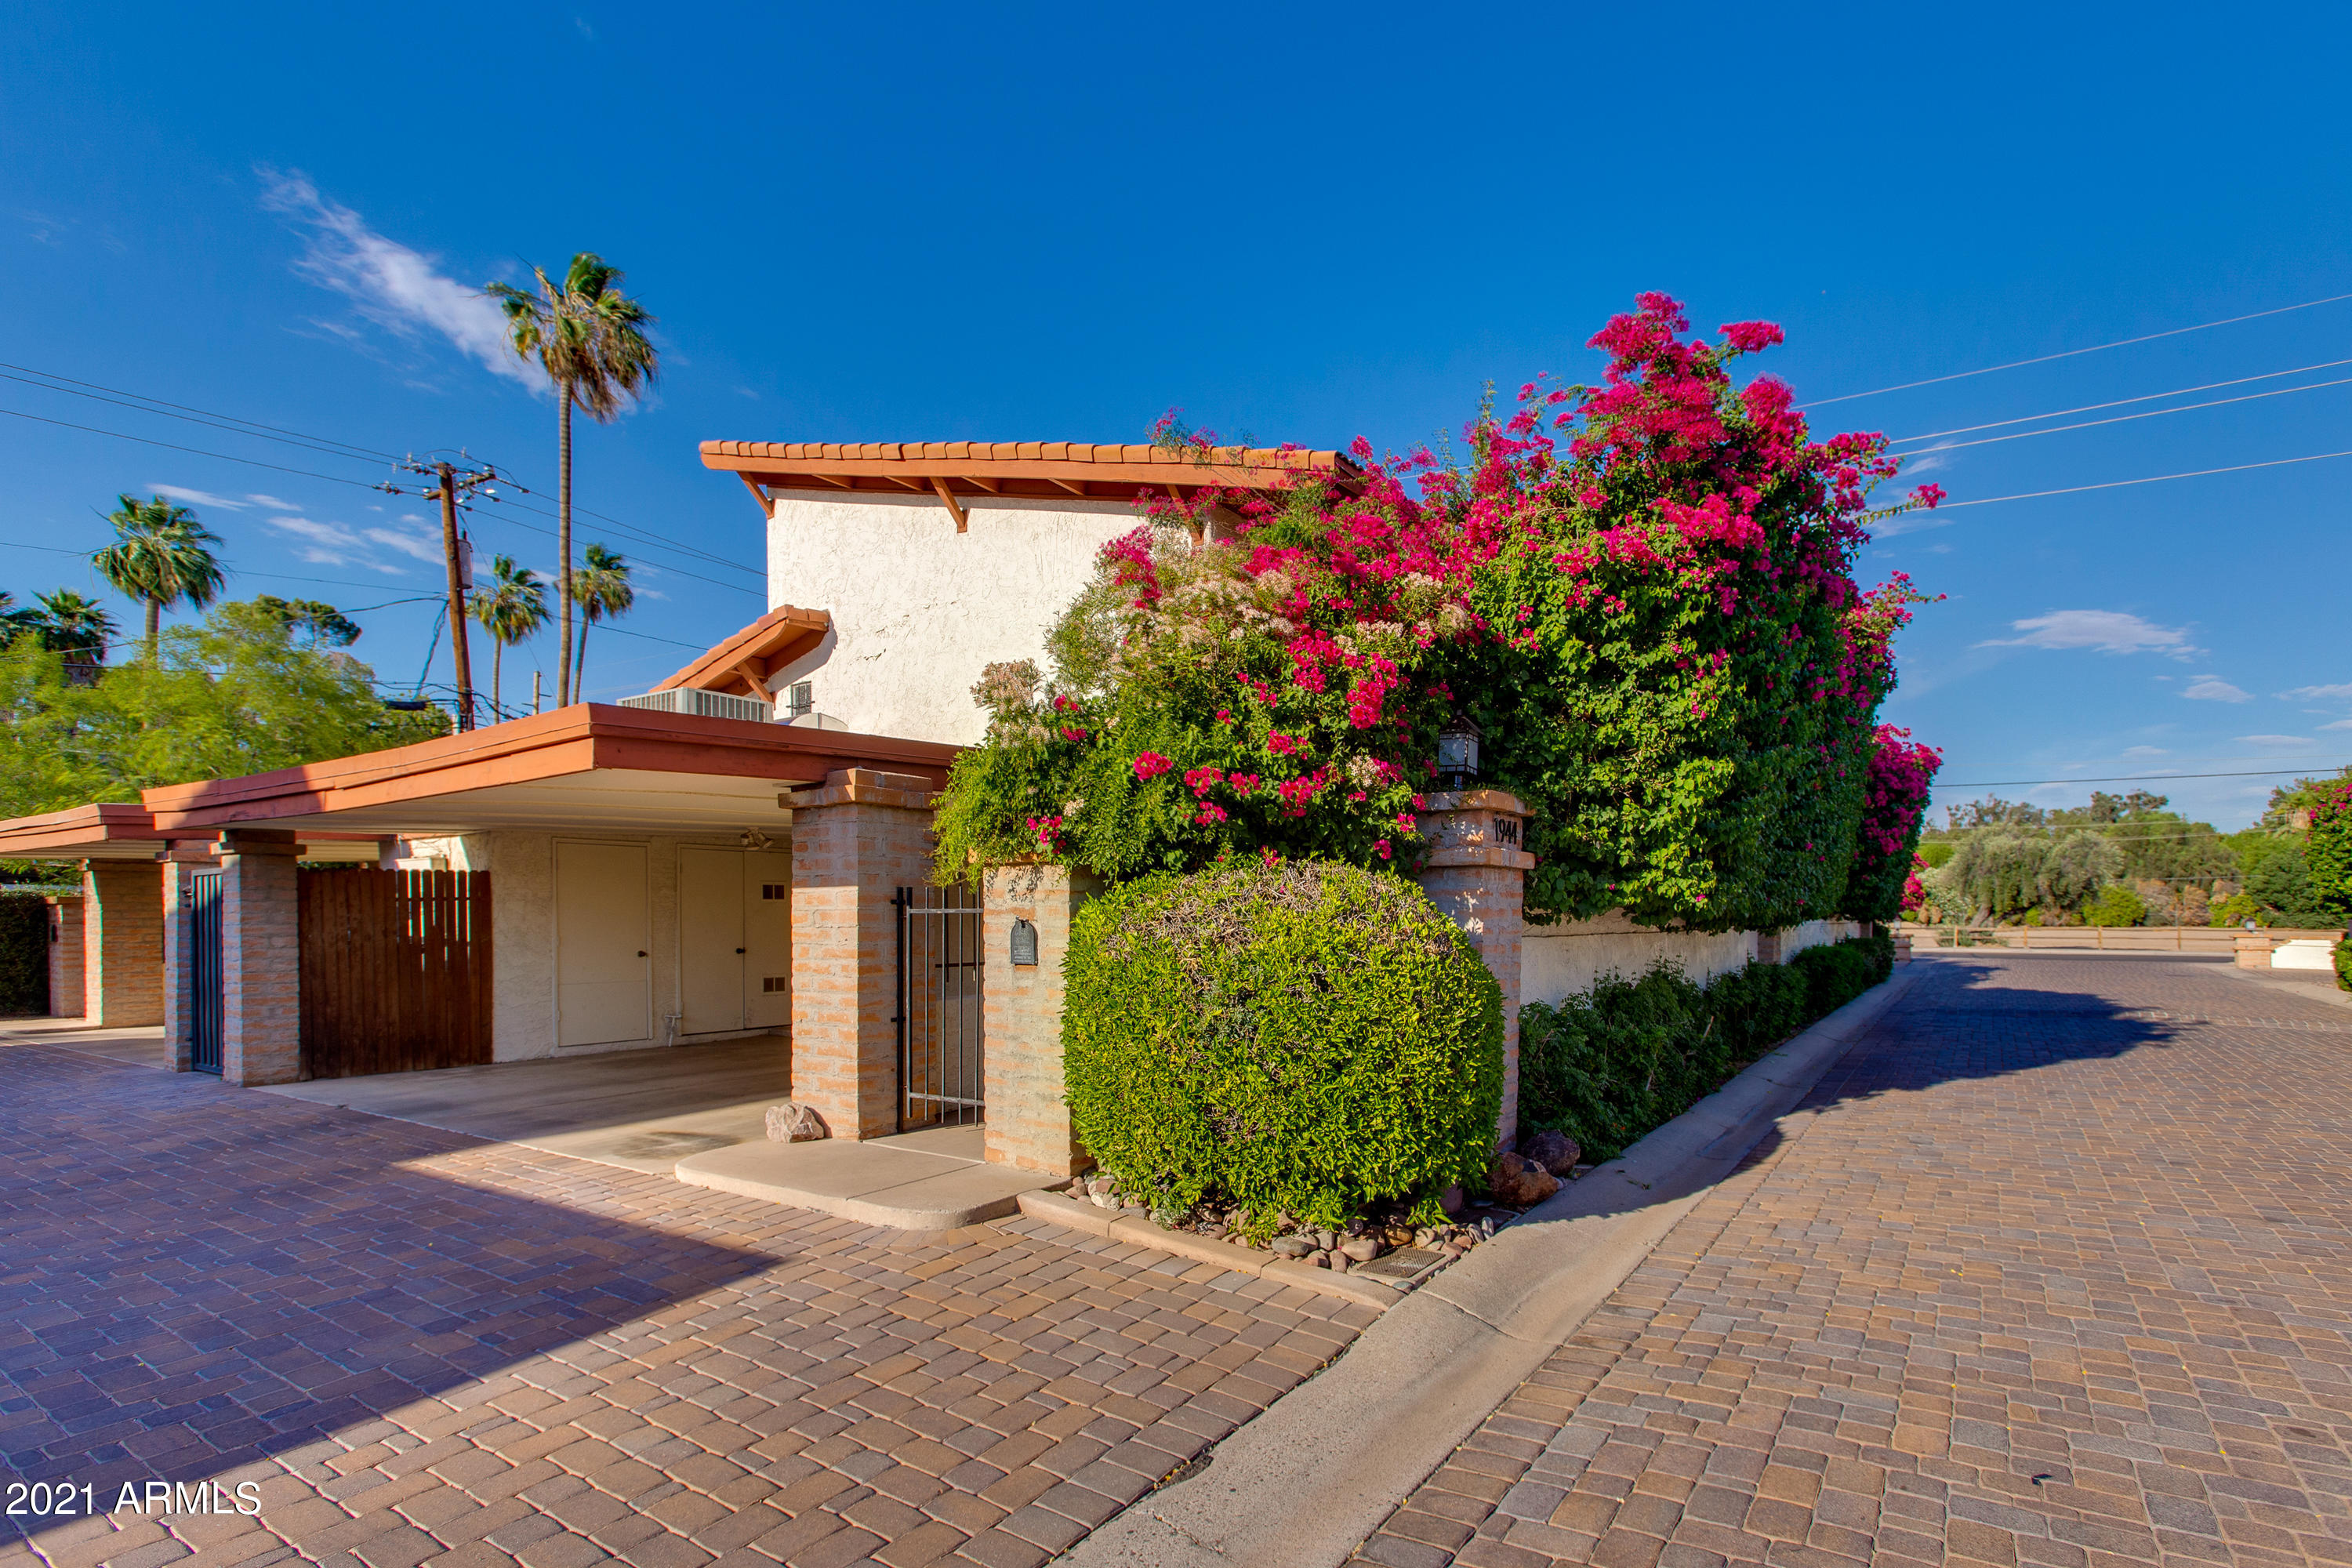 Welcome home to this nicely maintained two-story townhouse in Casa Amertas, a quaint community with a private drive located in a fantastic area near Camelback Colonnade, Town & Country Shopping Center, Biltmore Fashion Park, and AZ-51 Freeway. This clean slate is ready for your personal touches and features living room, dining area, kitchen, and half bath on the first floor, while the two bedrooms and full bathrooms are on the second floor. The master bedroom features a viewing balcony that sits just above the spacious and intimate back patio. With a two-car carport, private laundry room, and community pool, you can enjoy all of the comforts of a single family house in this condo!